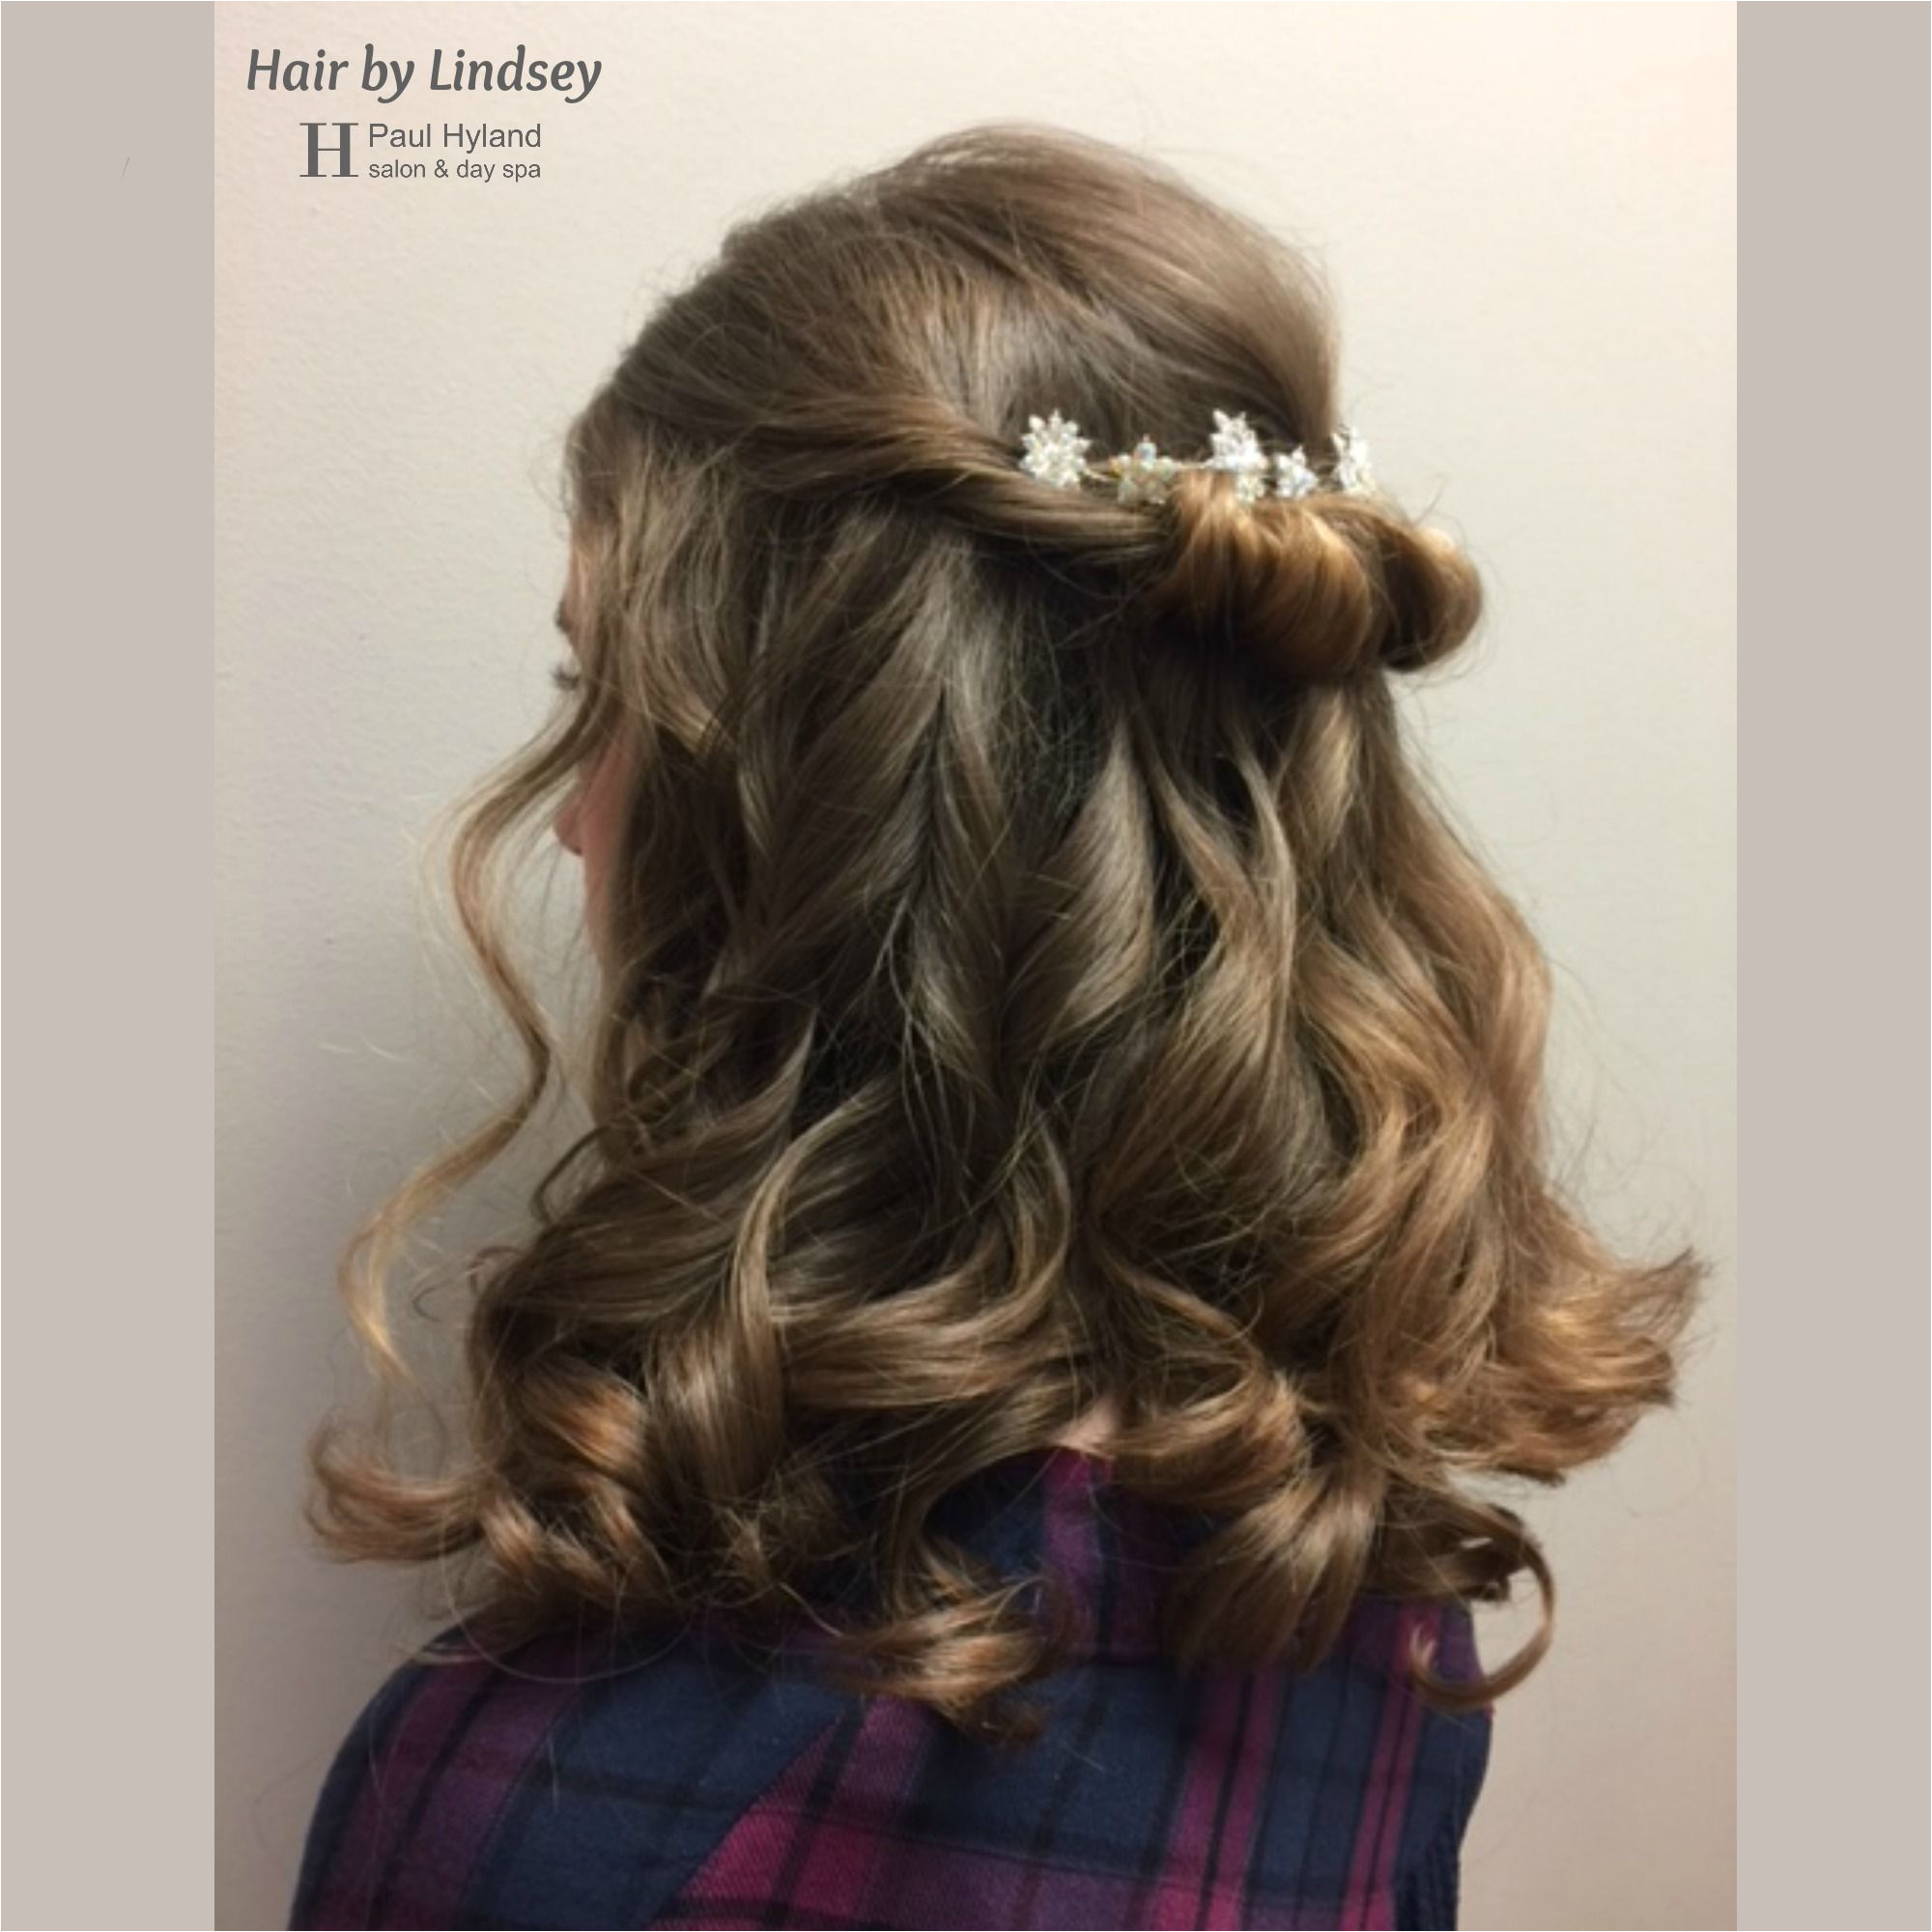 Paul Hyland Salon And Day Spa Twists and curls Pretty down style for wedding